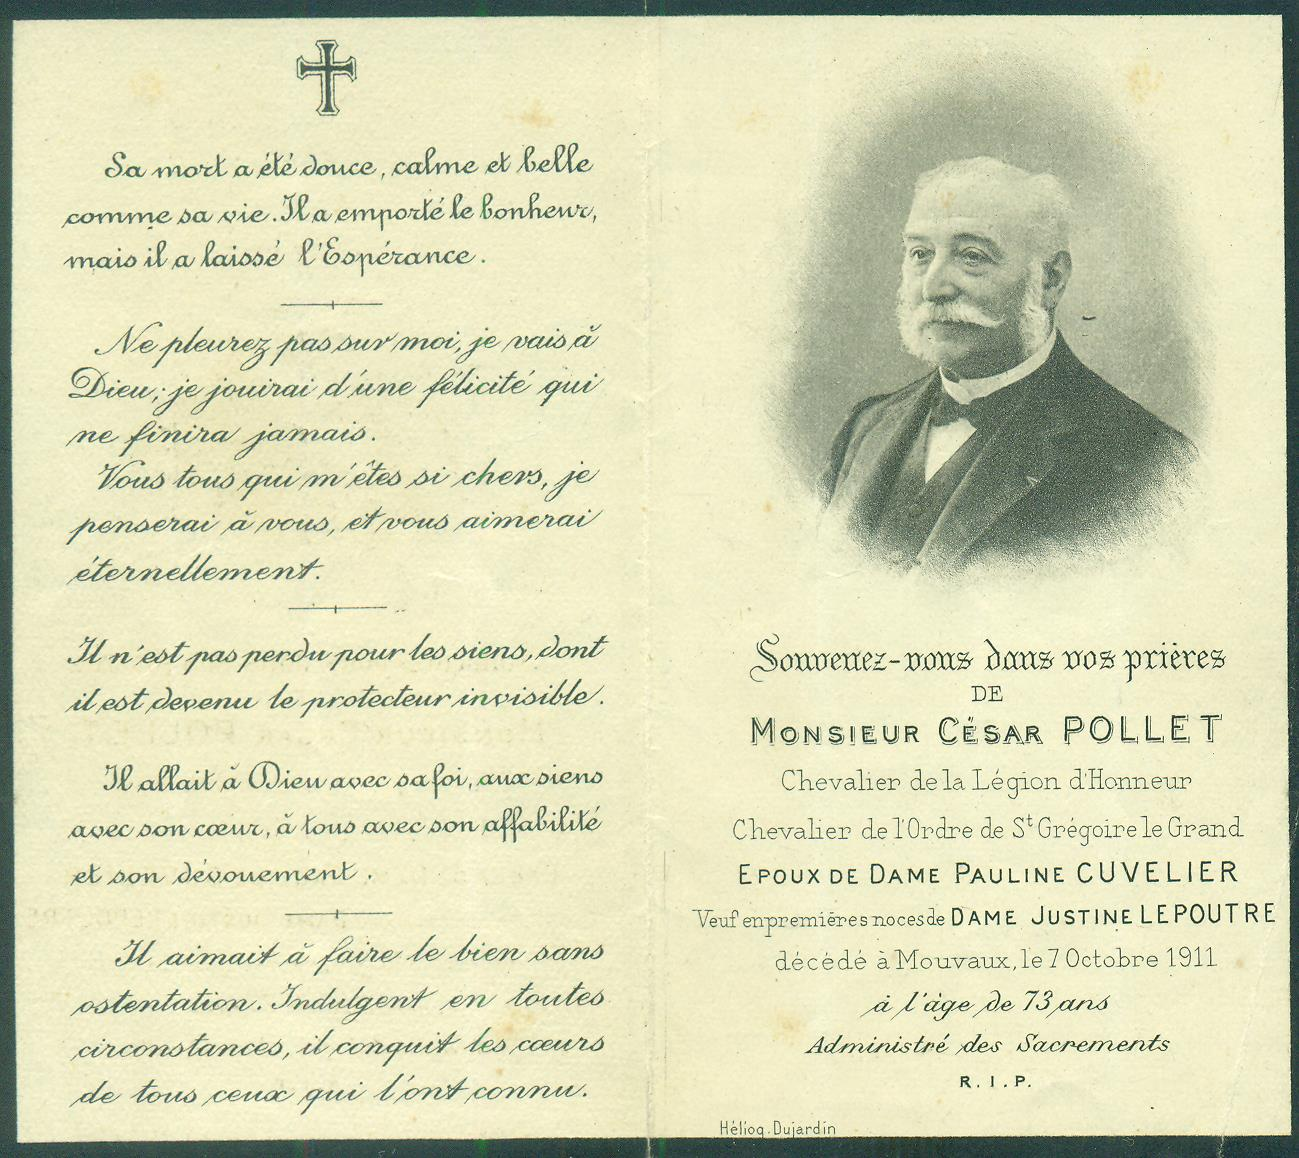 Pollet-Cuvelier-